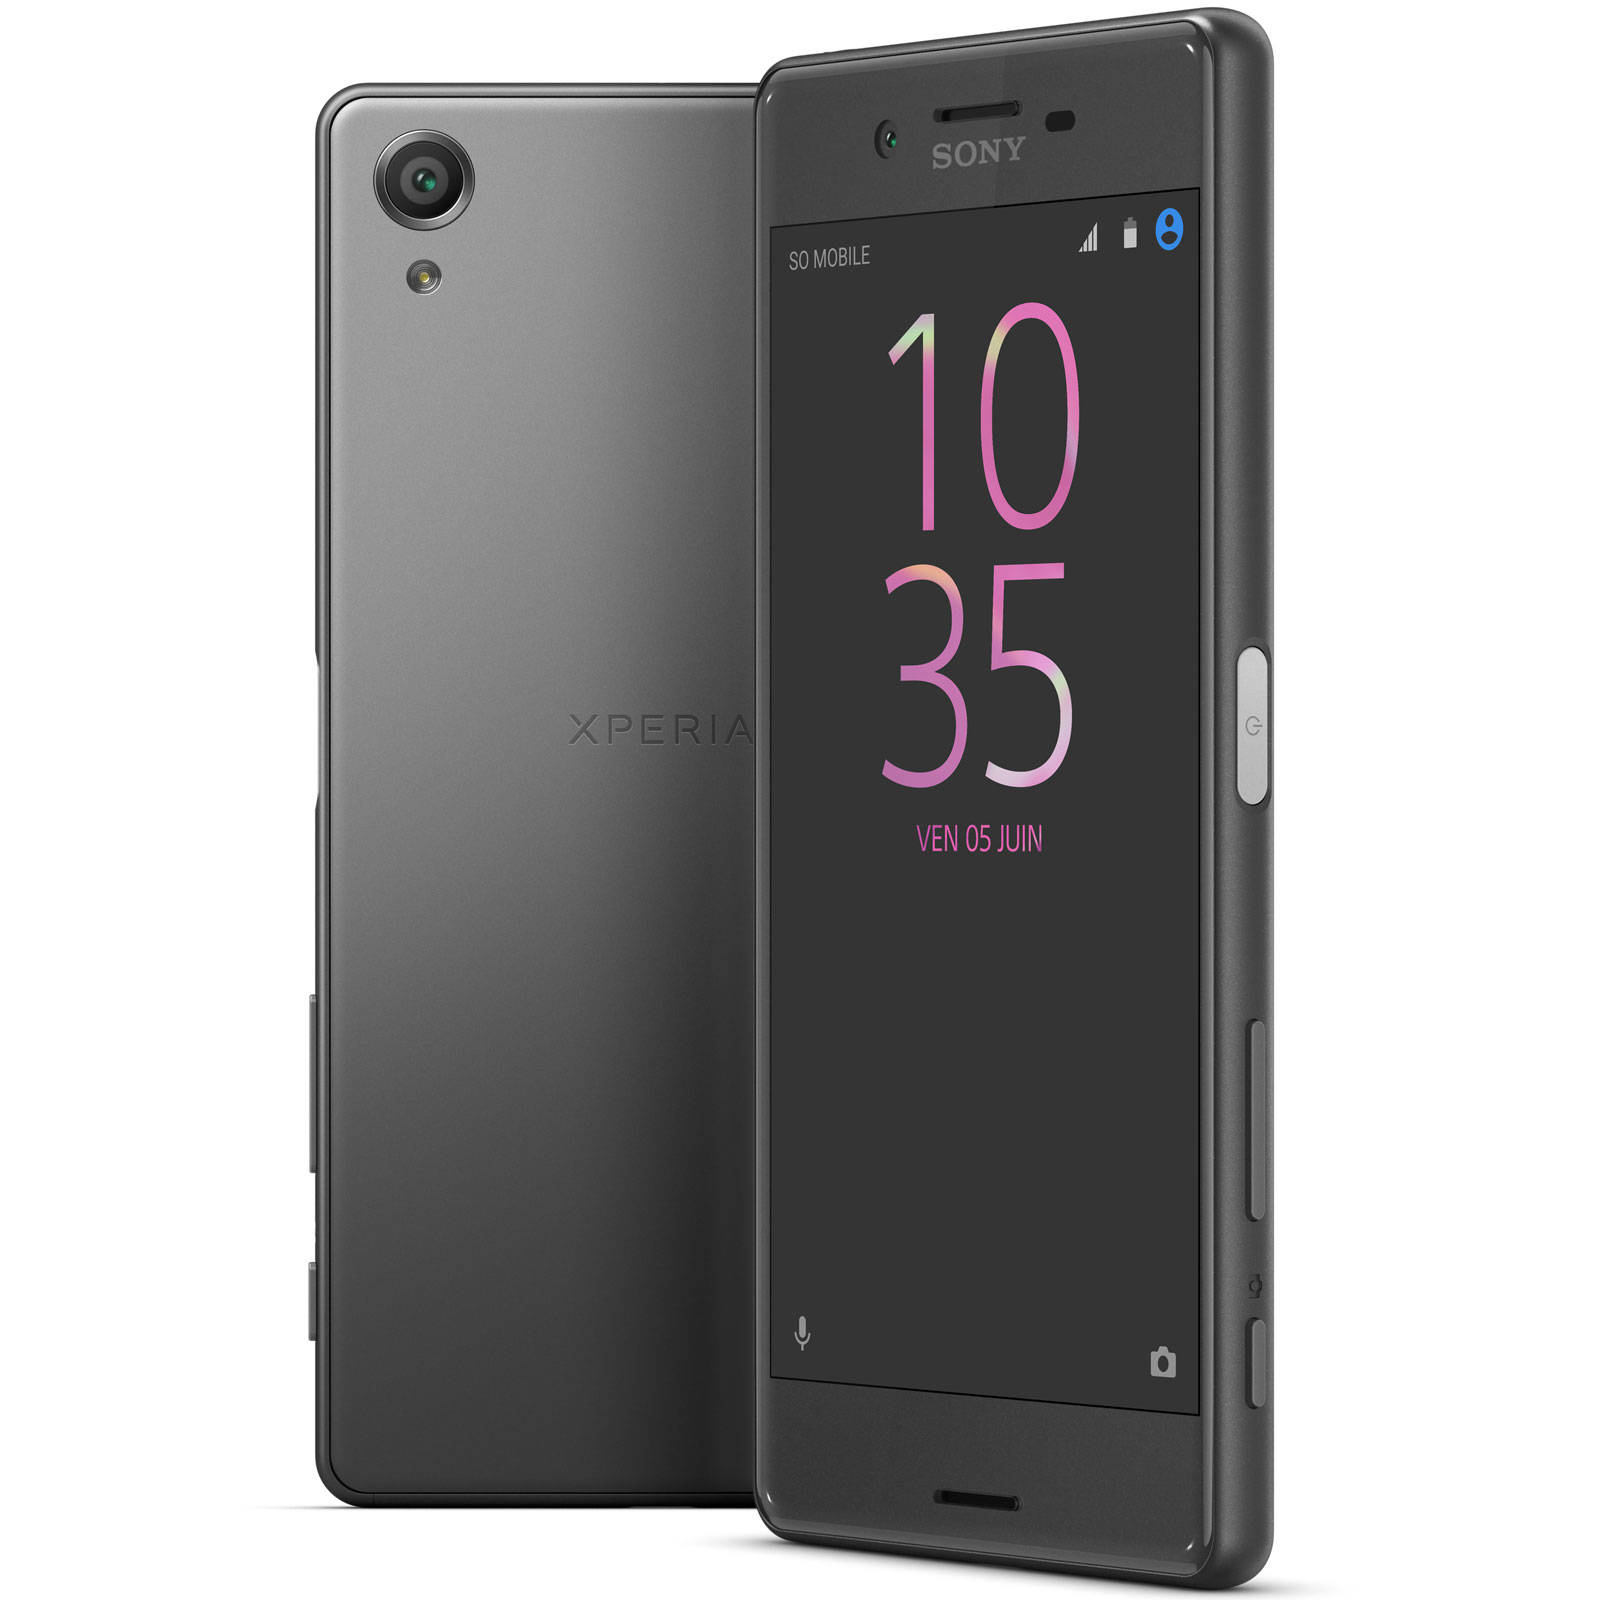 sony xperia x dual sim 64 go noir mobile smartphone. Black Bedroom Furniture Sets. Home Design Ideas